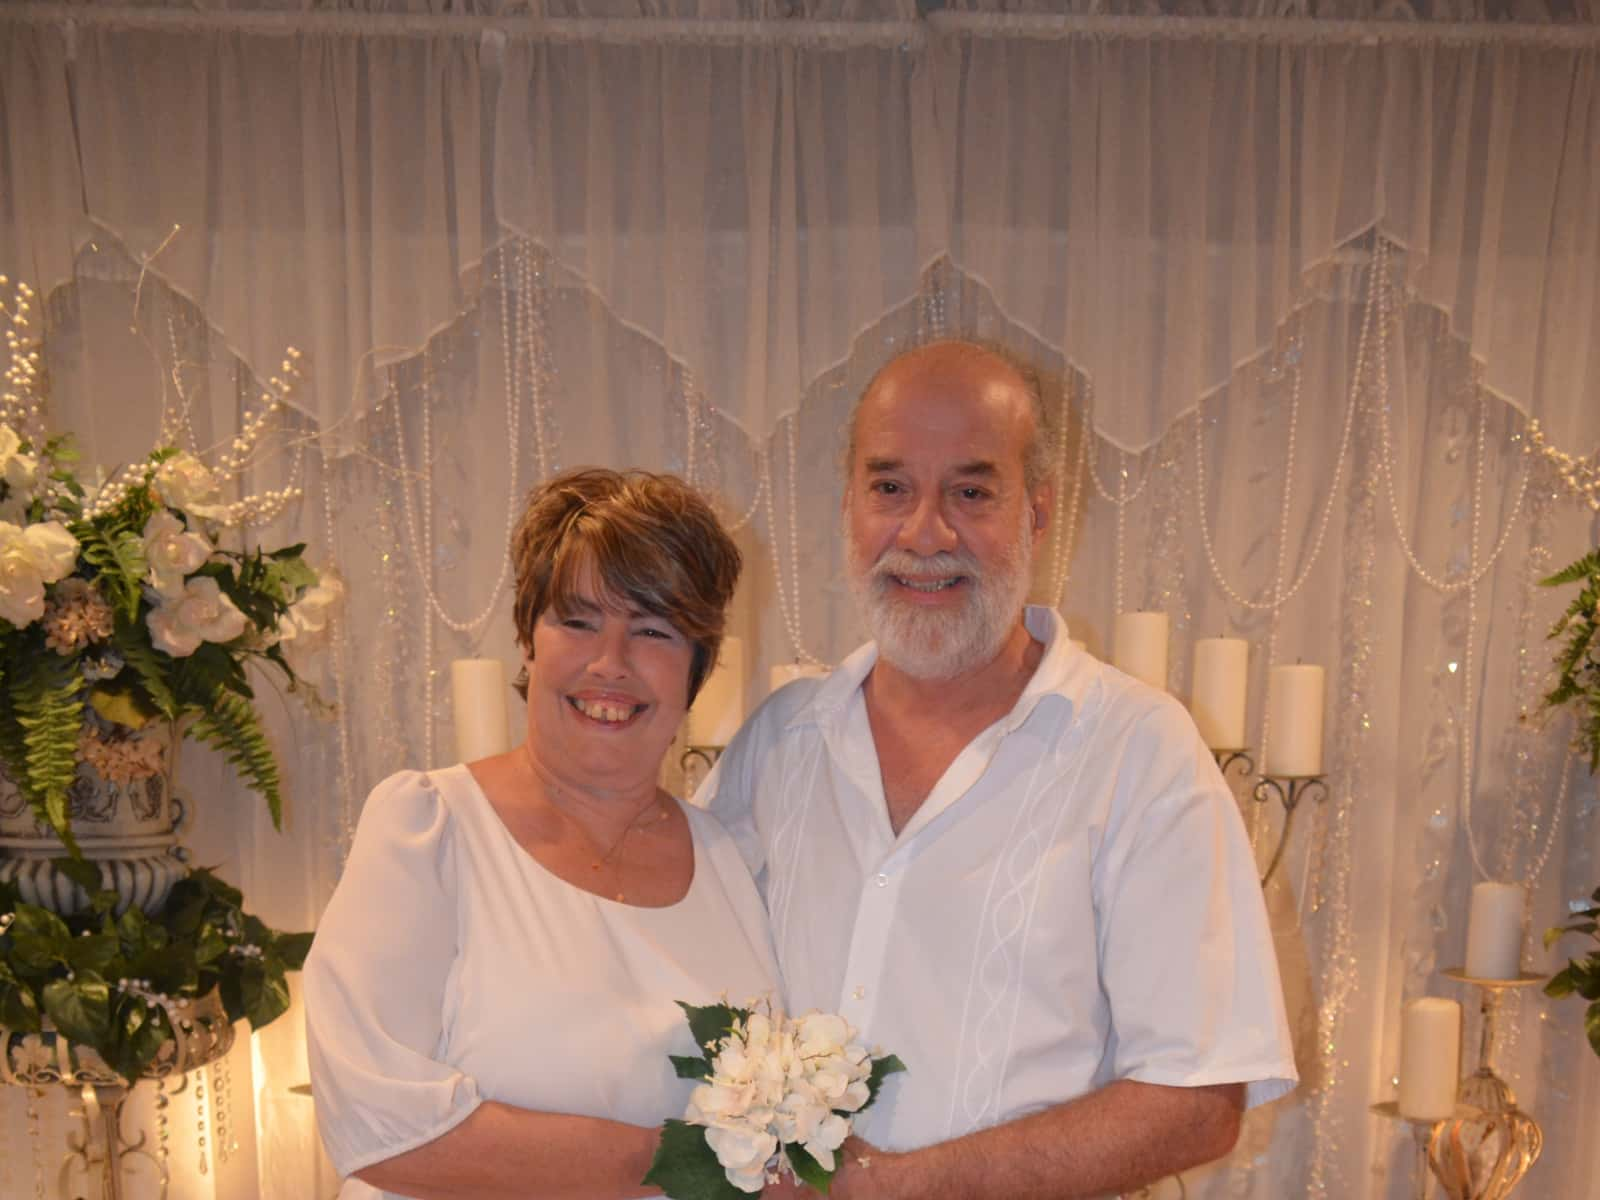 Claire & Daniel from Moncton, New Brunswick, Canada